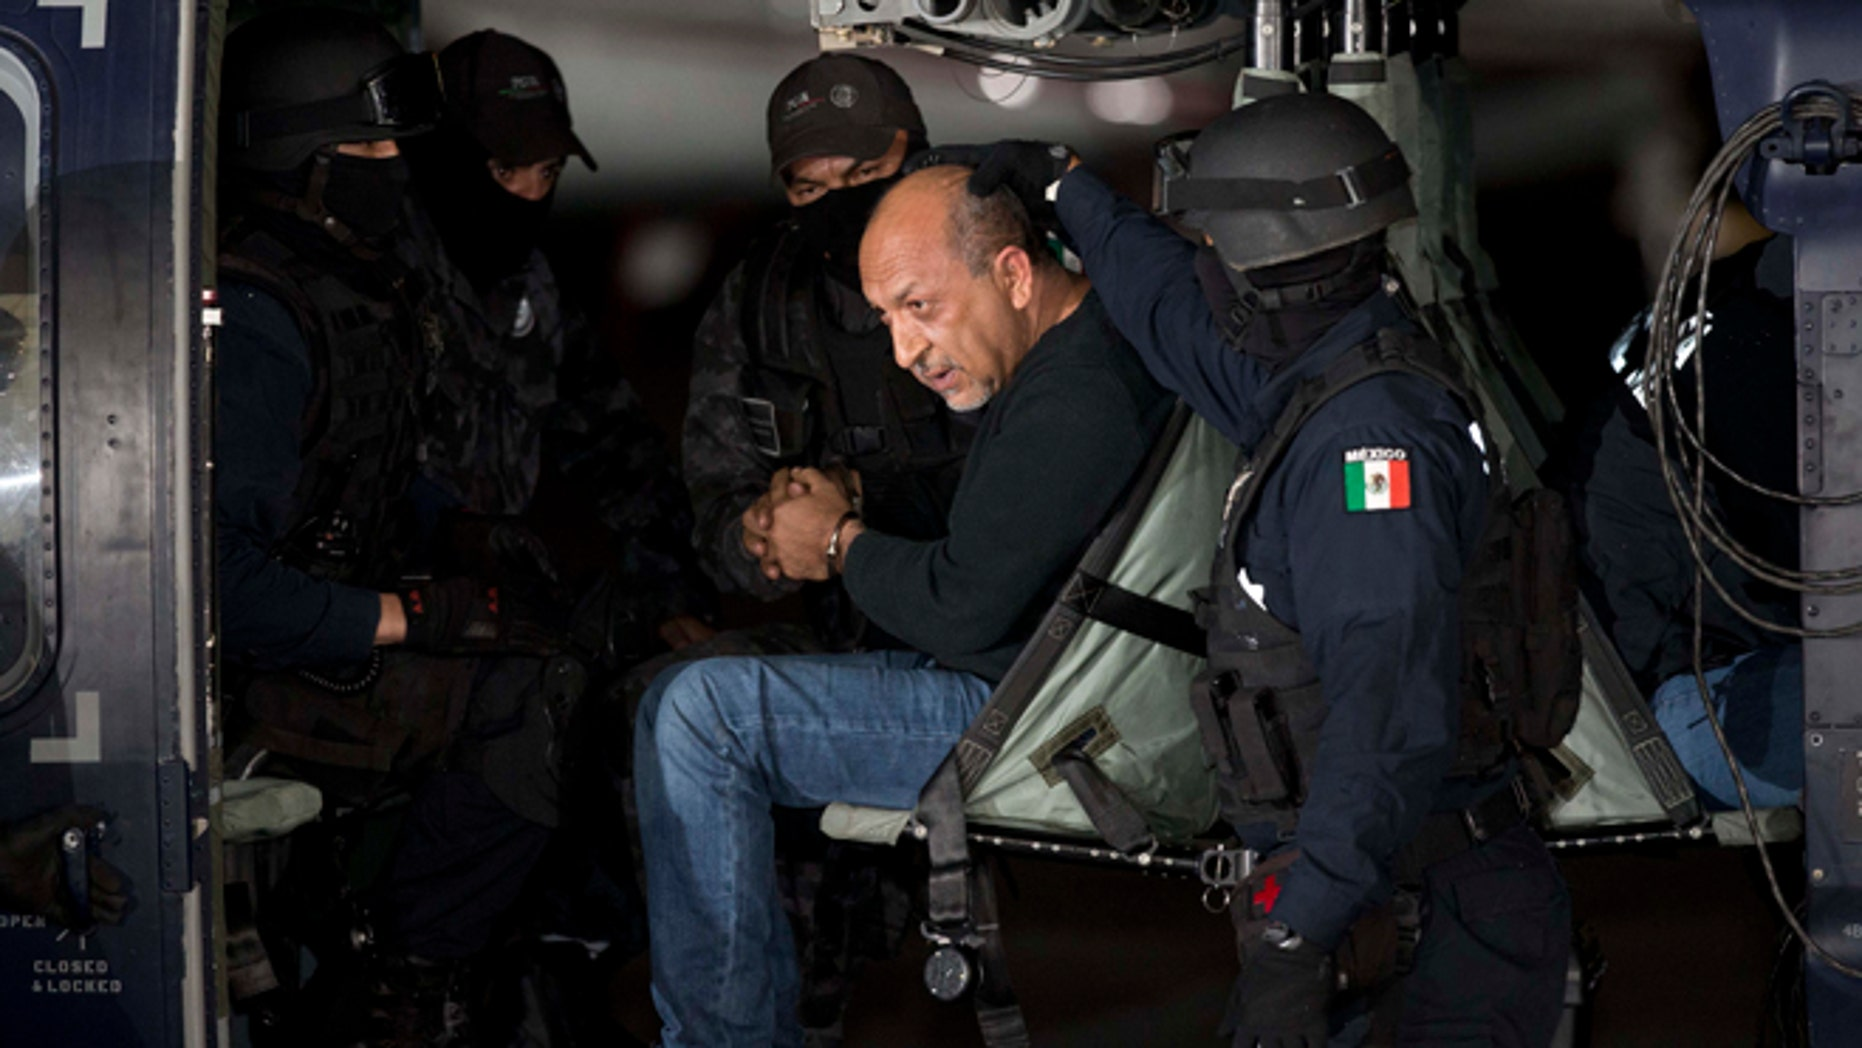 """ADDS PHOTOGRAPHER'S BYLINE - Federal police escort who they identify as Servando """"La Tuta"""" Gomez,""""leader of the Knights Templar cartel, as he sits inside helicopter at the Attorney General's Office hangarin Mexico City, Friday, Feb. 27, 2015.Gomez, a former school teacher who became one of Mexico's most-wanted drug lords as head of the Knights Templar cartel, was captured early Friday by federal police, according to Mexican officials. (AP Photo/Eduardo Verdugo)"""